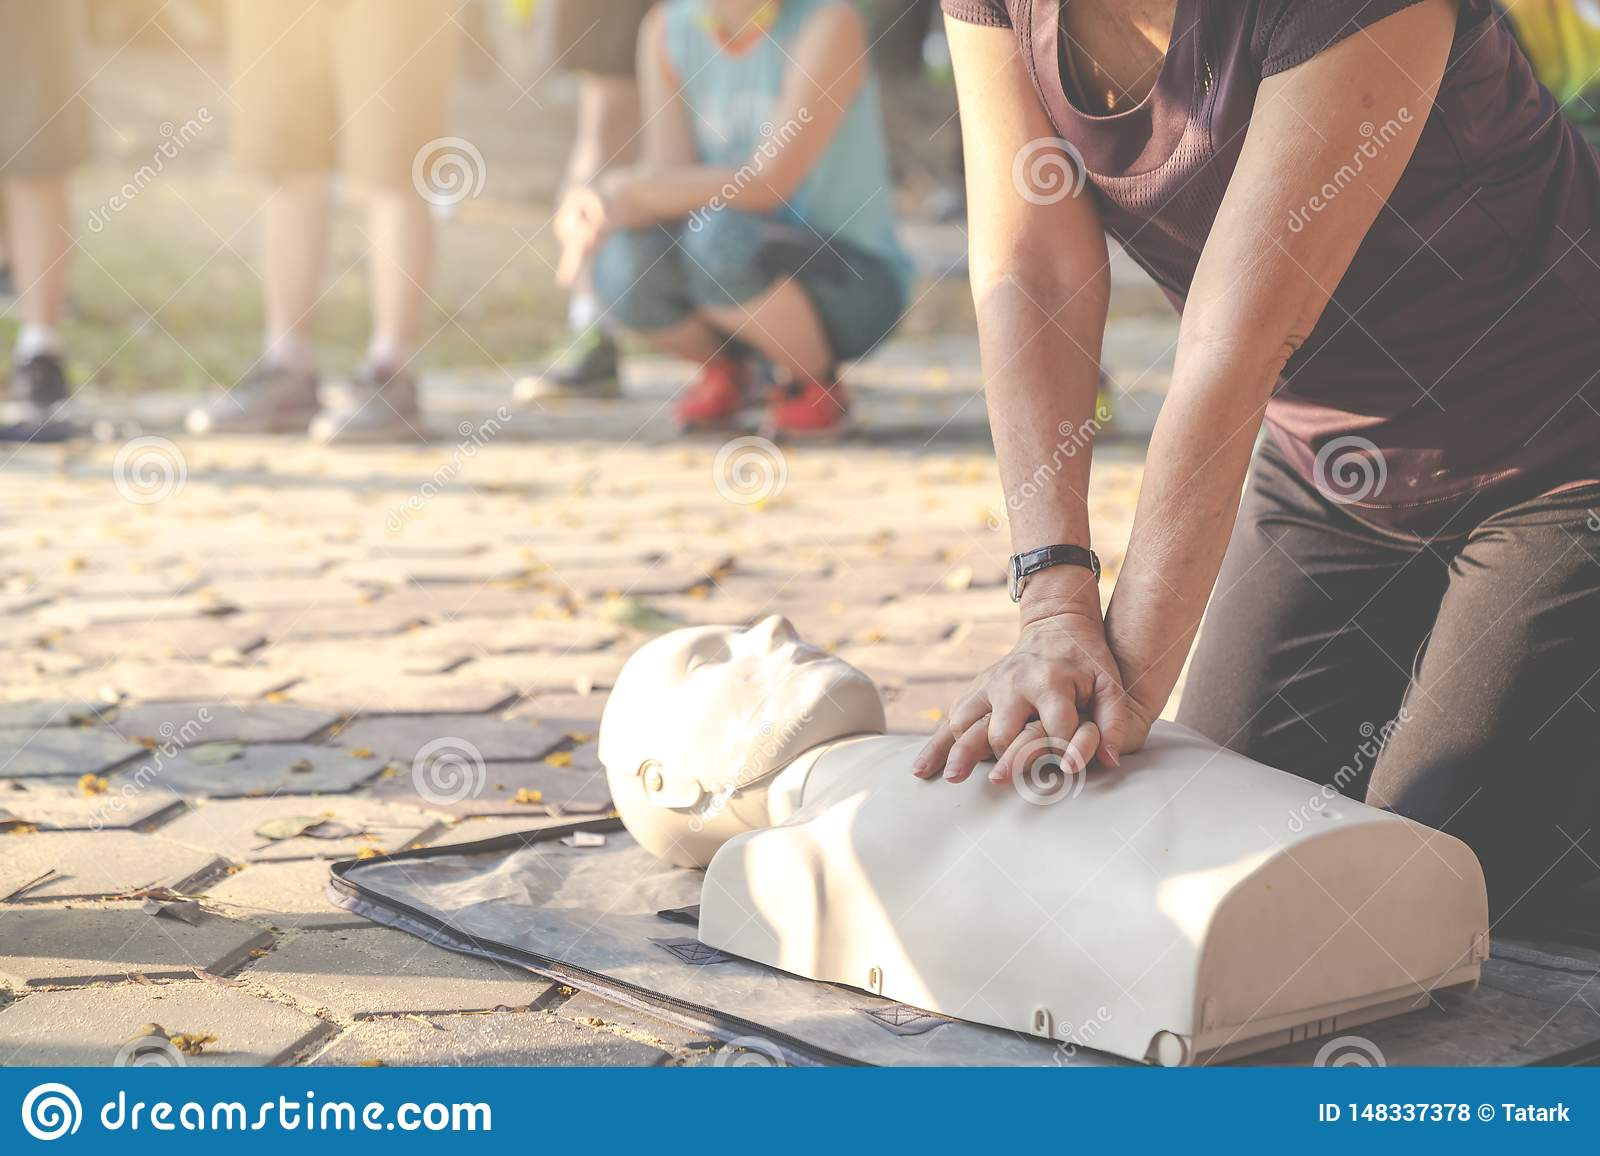 Candid of mature asian female or older runner woman training on CPR demonstrating class in outdoor park and put hands over CPR